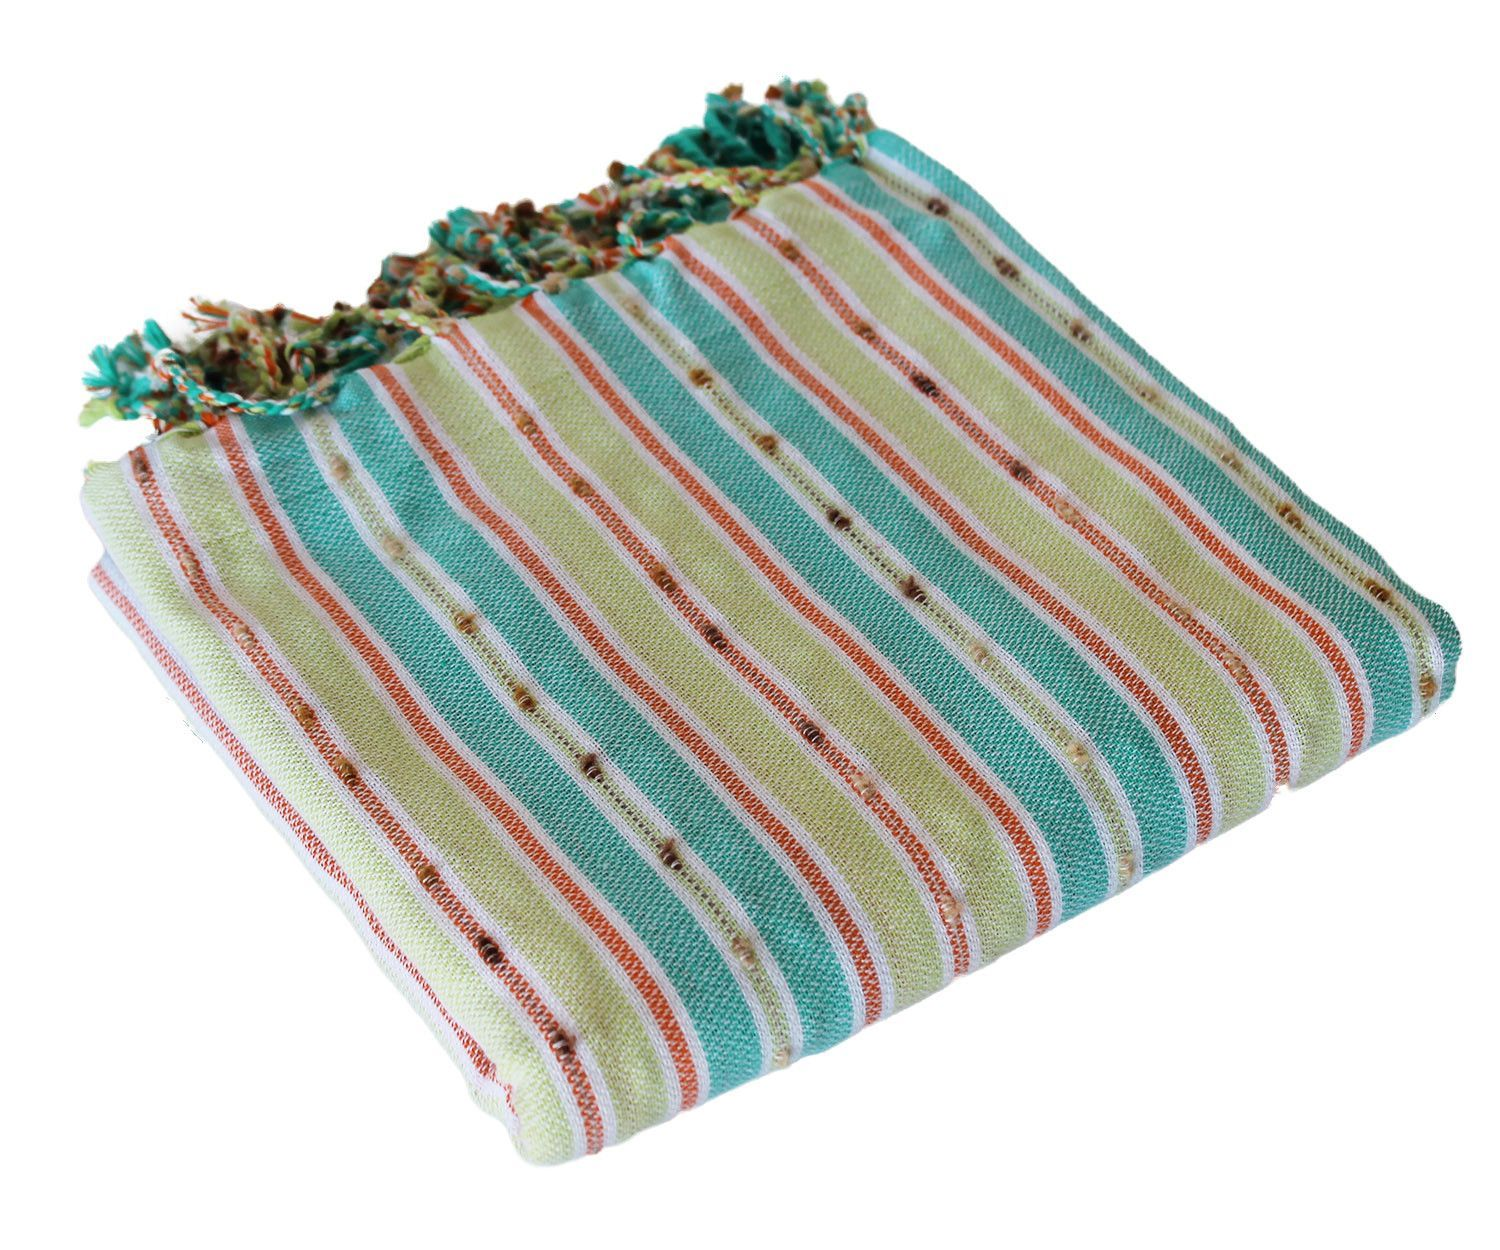 Mint Green Bath Towels Unique Mint Green Designer Peshtemal Turkish Towel  Mint Green Towels And Review